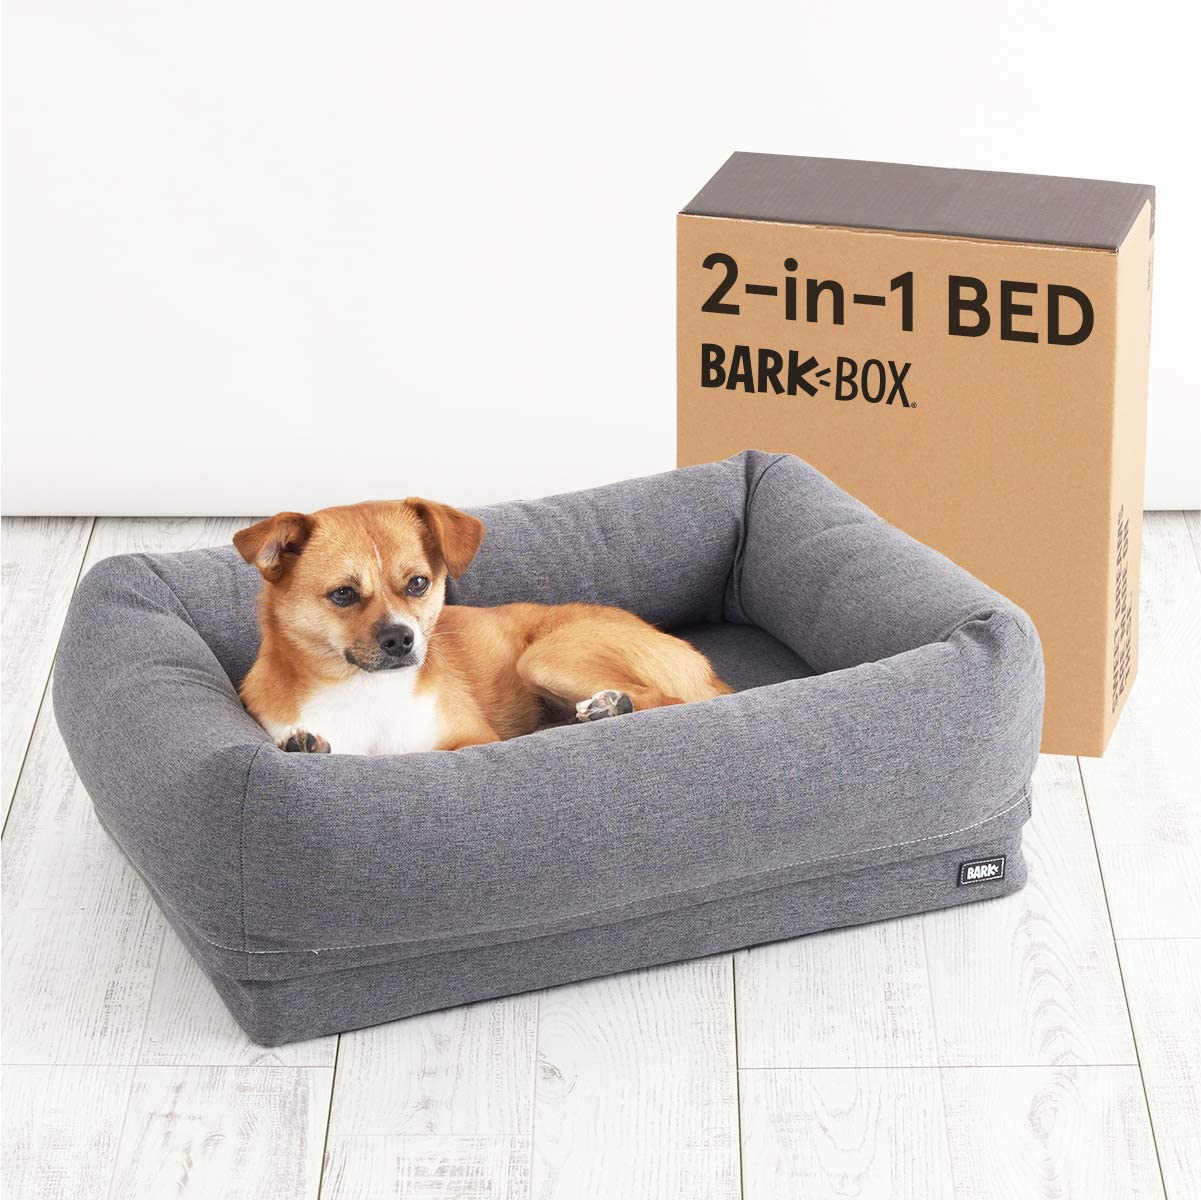 Barkbox 2-in-1 Memory Foam Dog Cuddler Bed | Plush Orthopedic Joint Relief Crate Lounger or Donut Pillow Bed, Machine Washable + Removable Cover | Waterproof Lining | Includes Toy